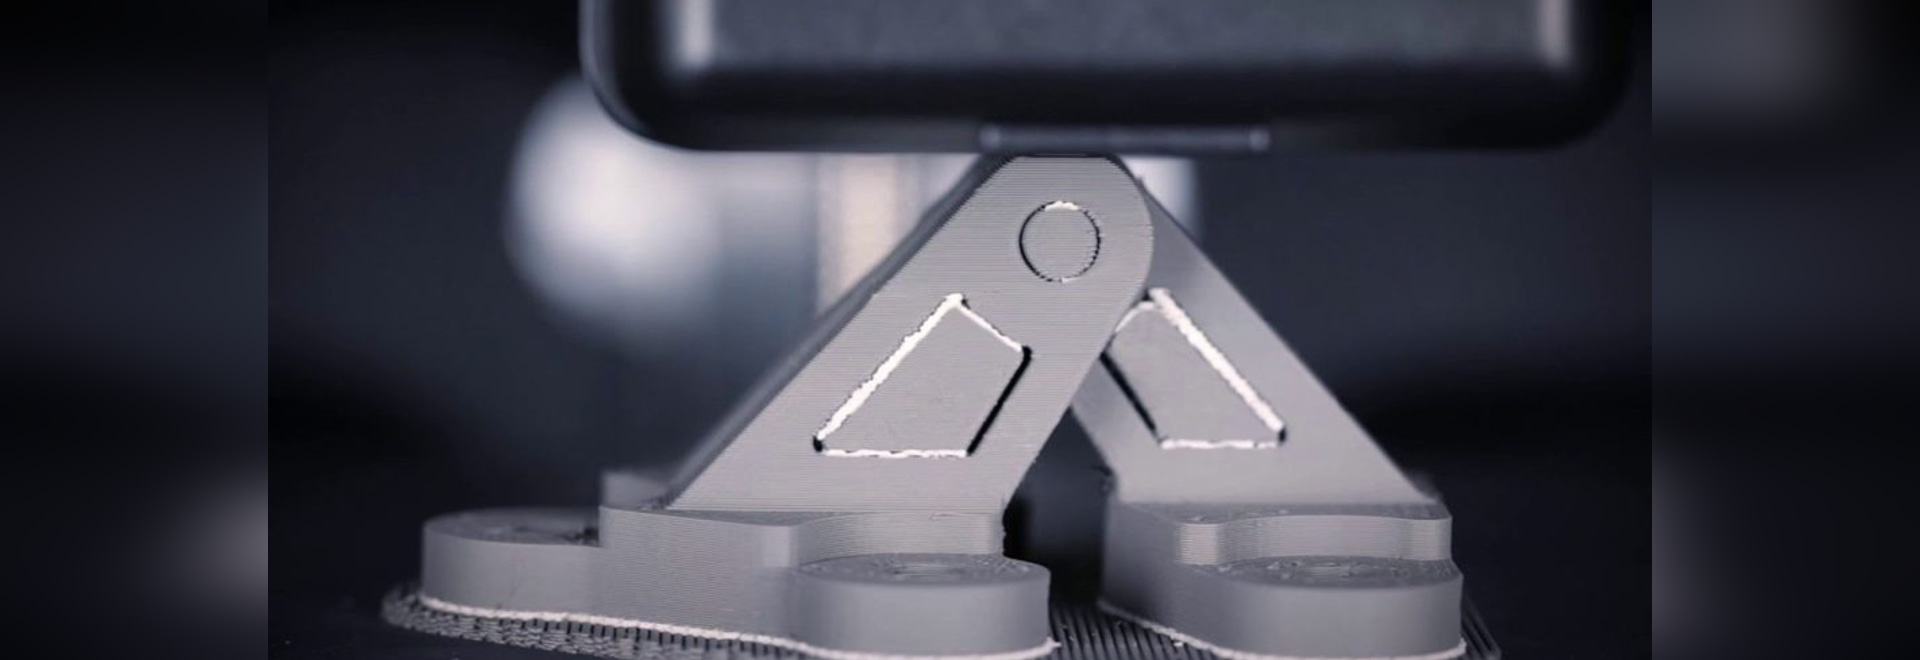 In the coming decade, additive manufacturing will compete robustly with traditional forms of manufacturing.